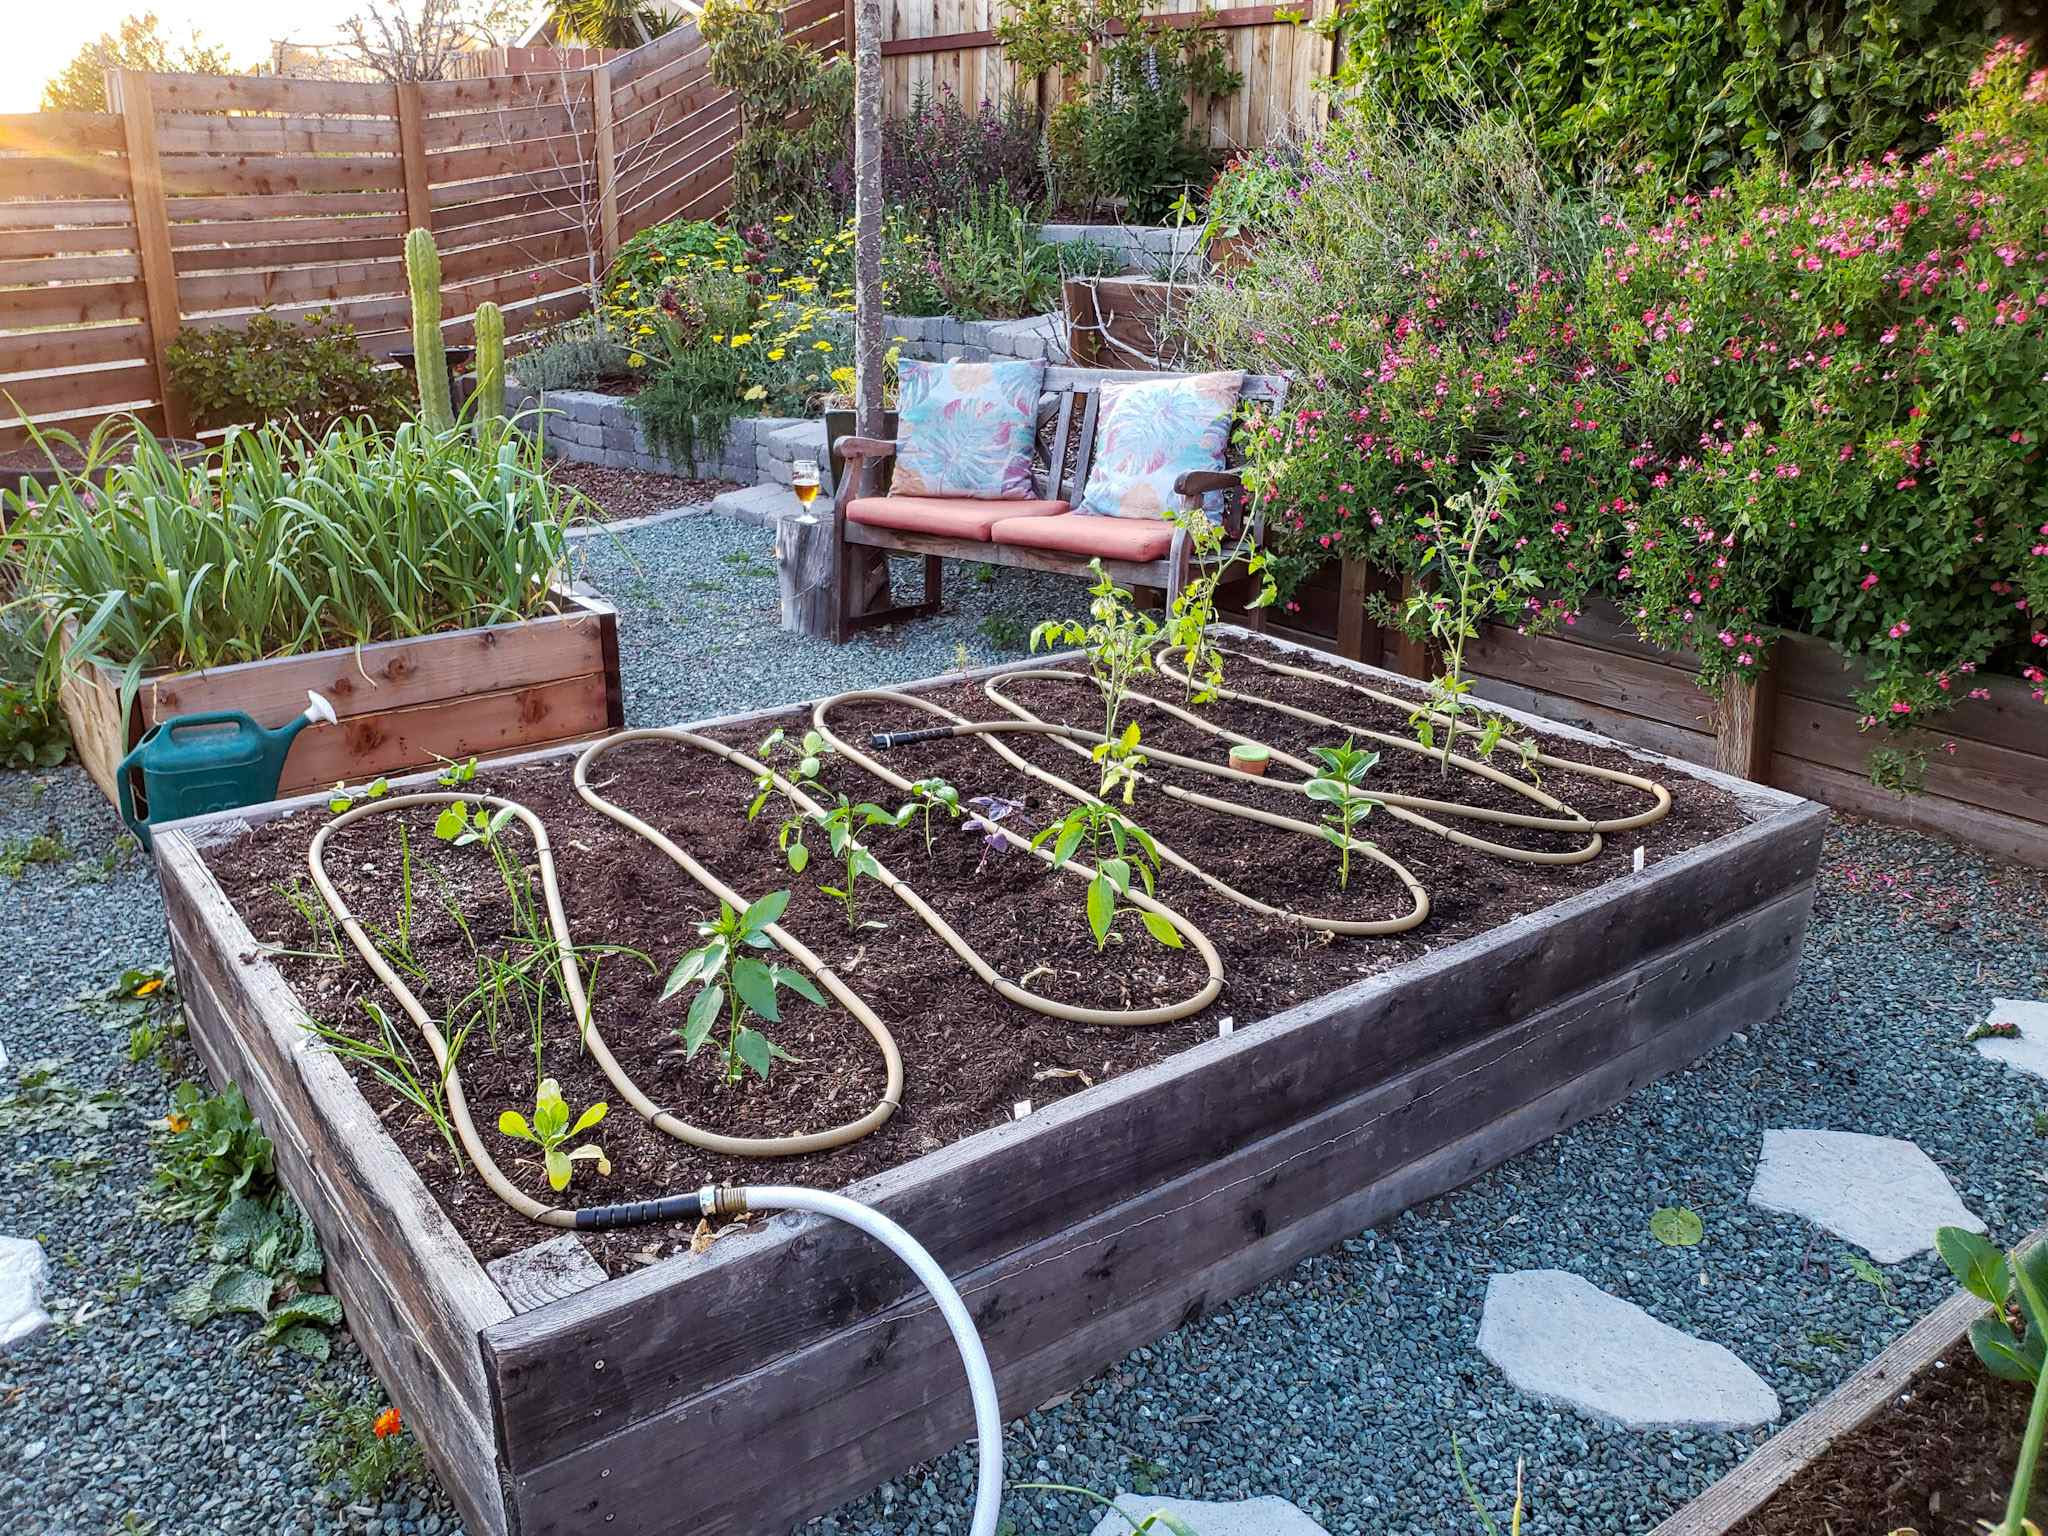 planting tomatoes in raised beds